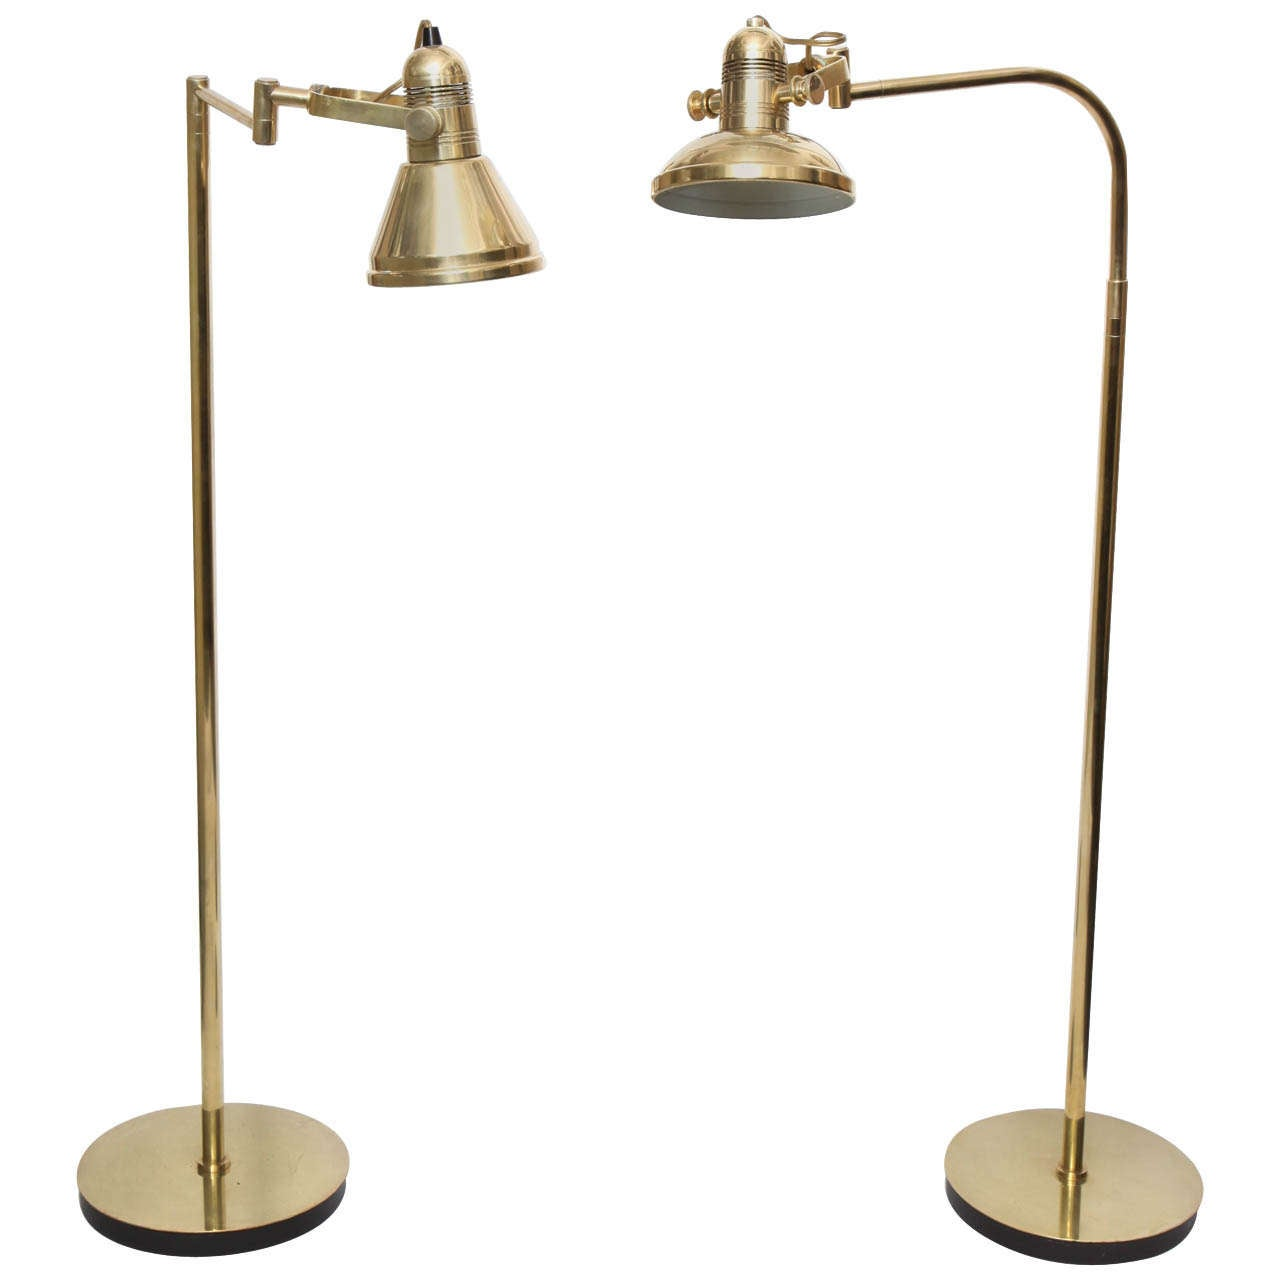 Pair Of 1970s Articulated Brass Floor Reading Lamps By